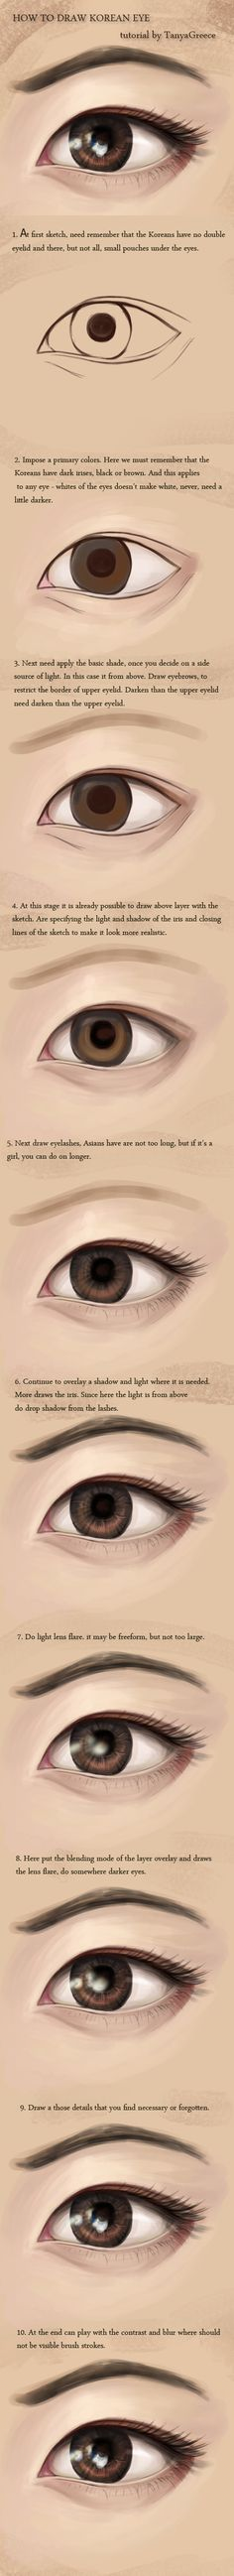 How To Draw Korean Eye by TanyaGreece on deviantART